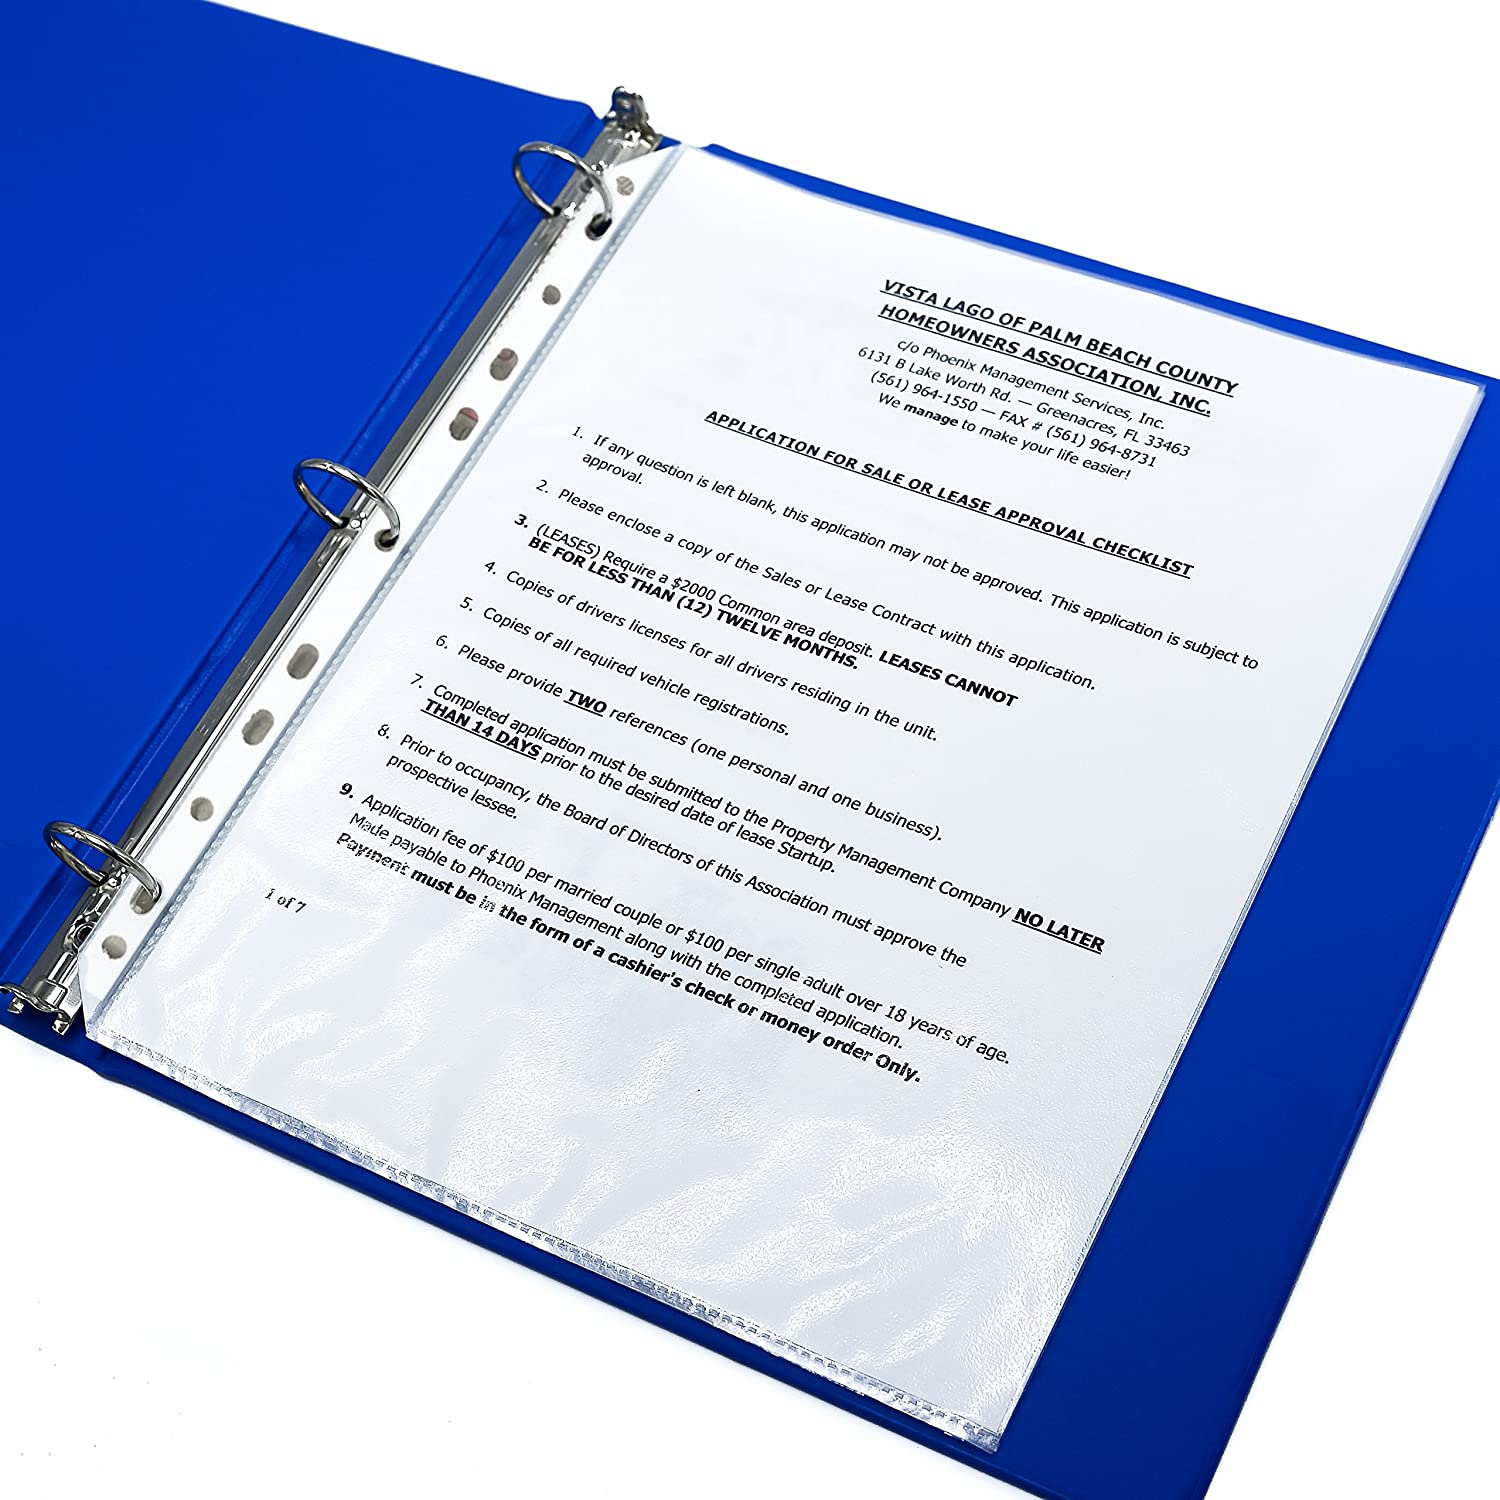 Sheet Protectors – Clear Plastic Sheets Protector 8 5 x 11 – Letter Size  Sheet Protectors 11 Holes for Any Binder 200 Pack